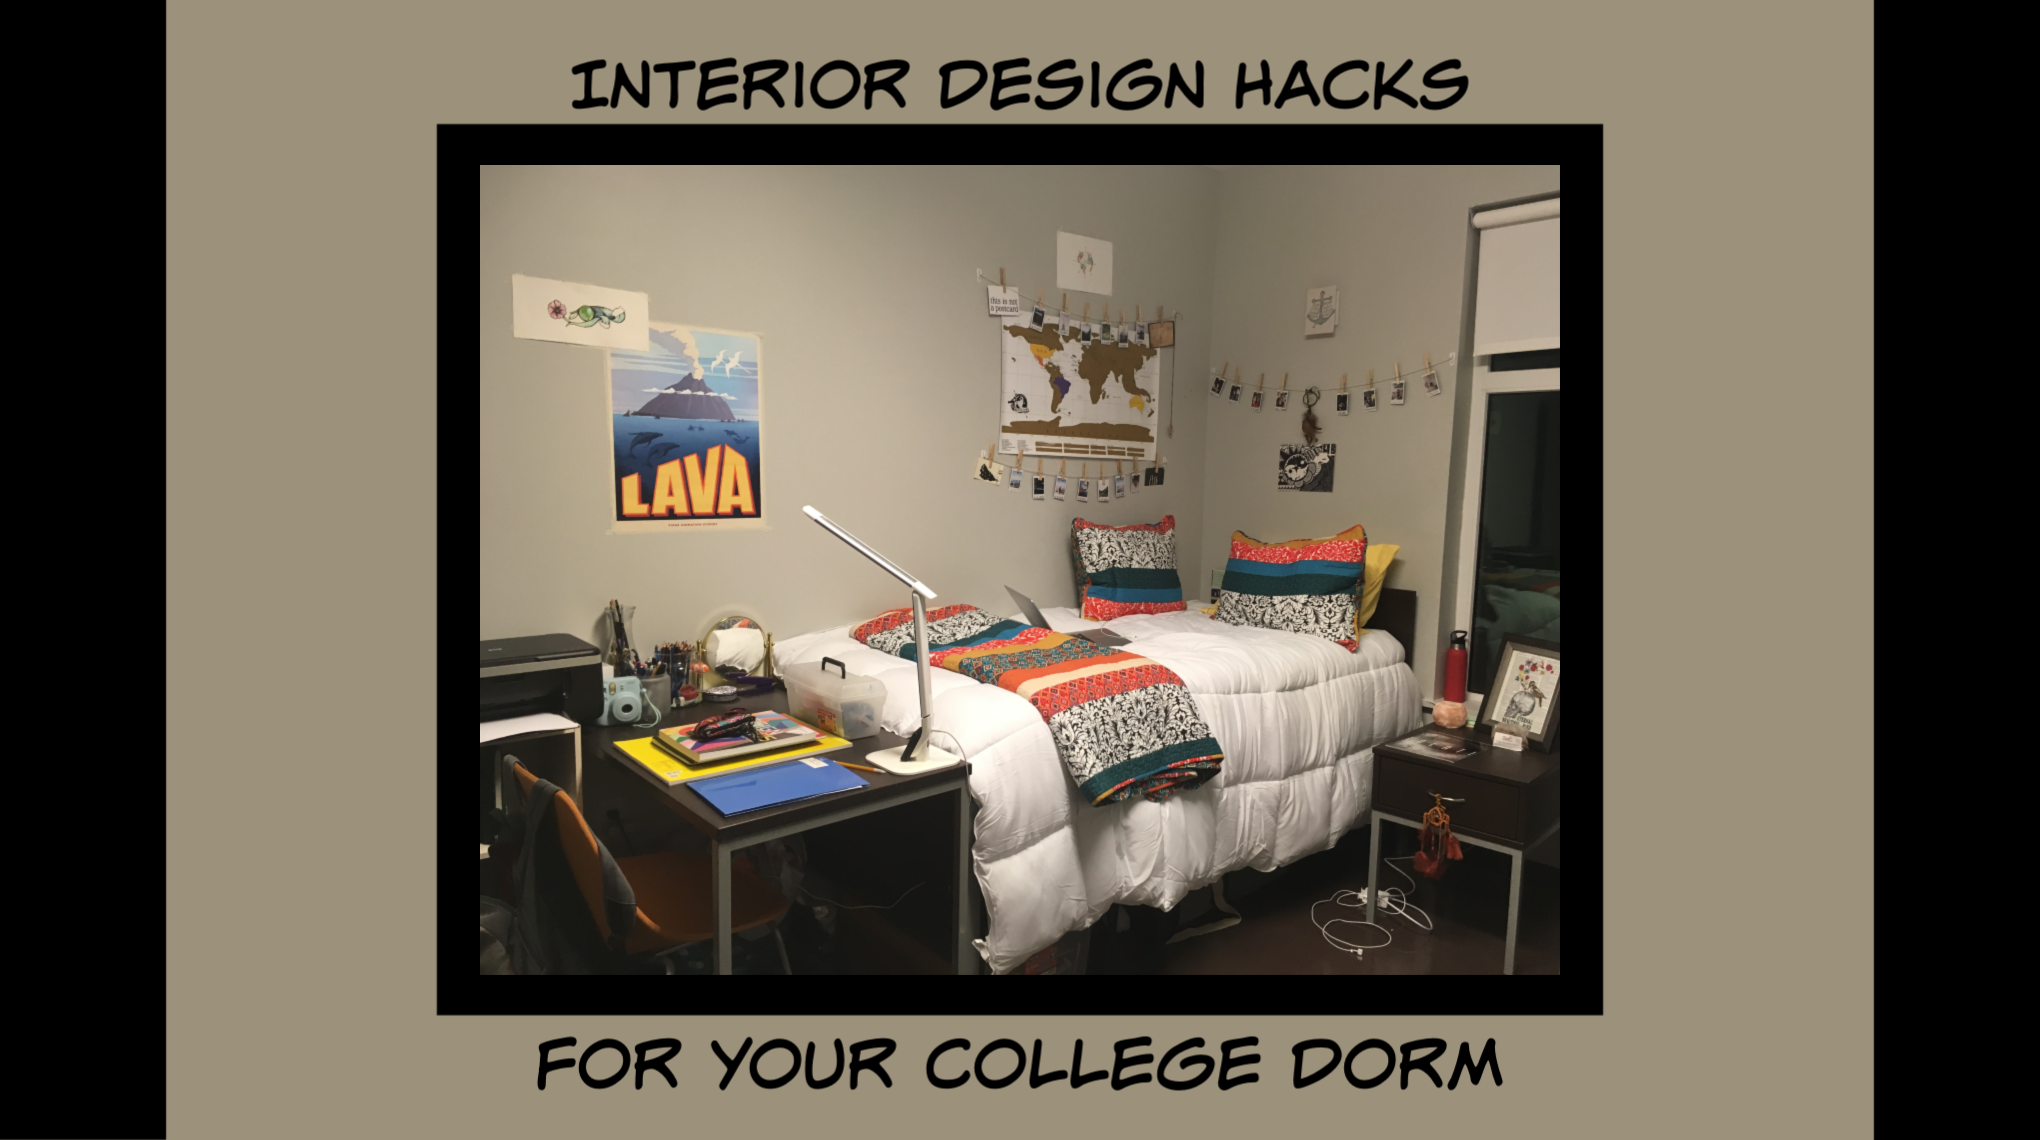 For Your College Dorm